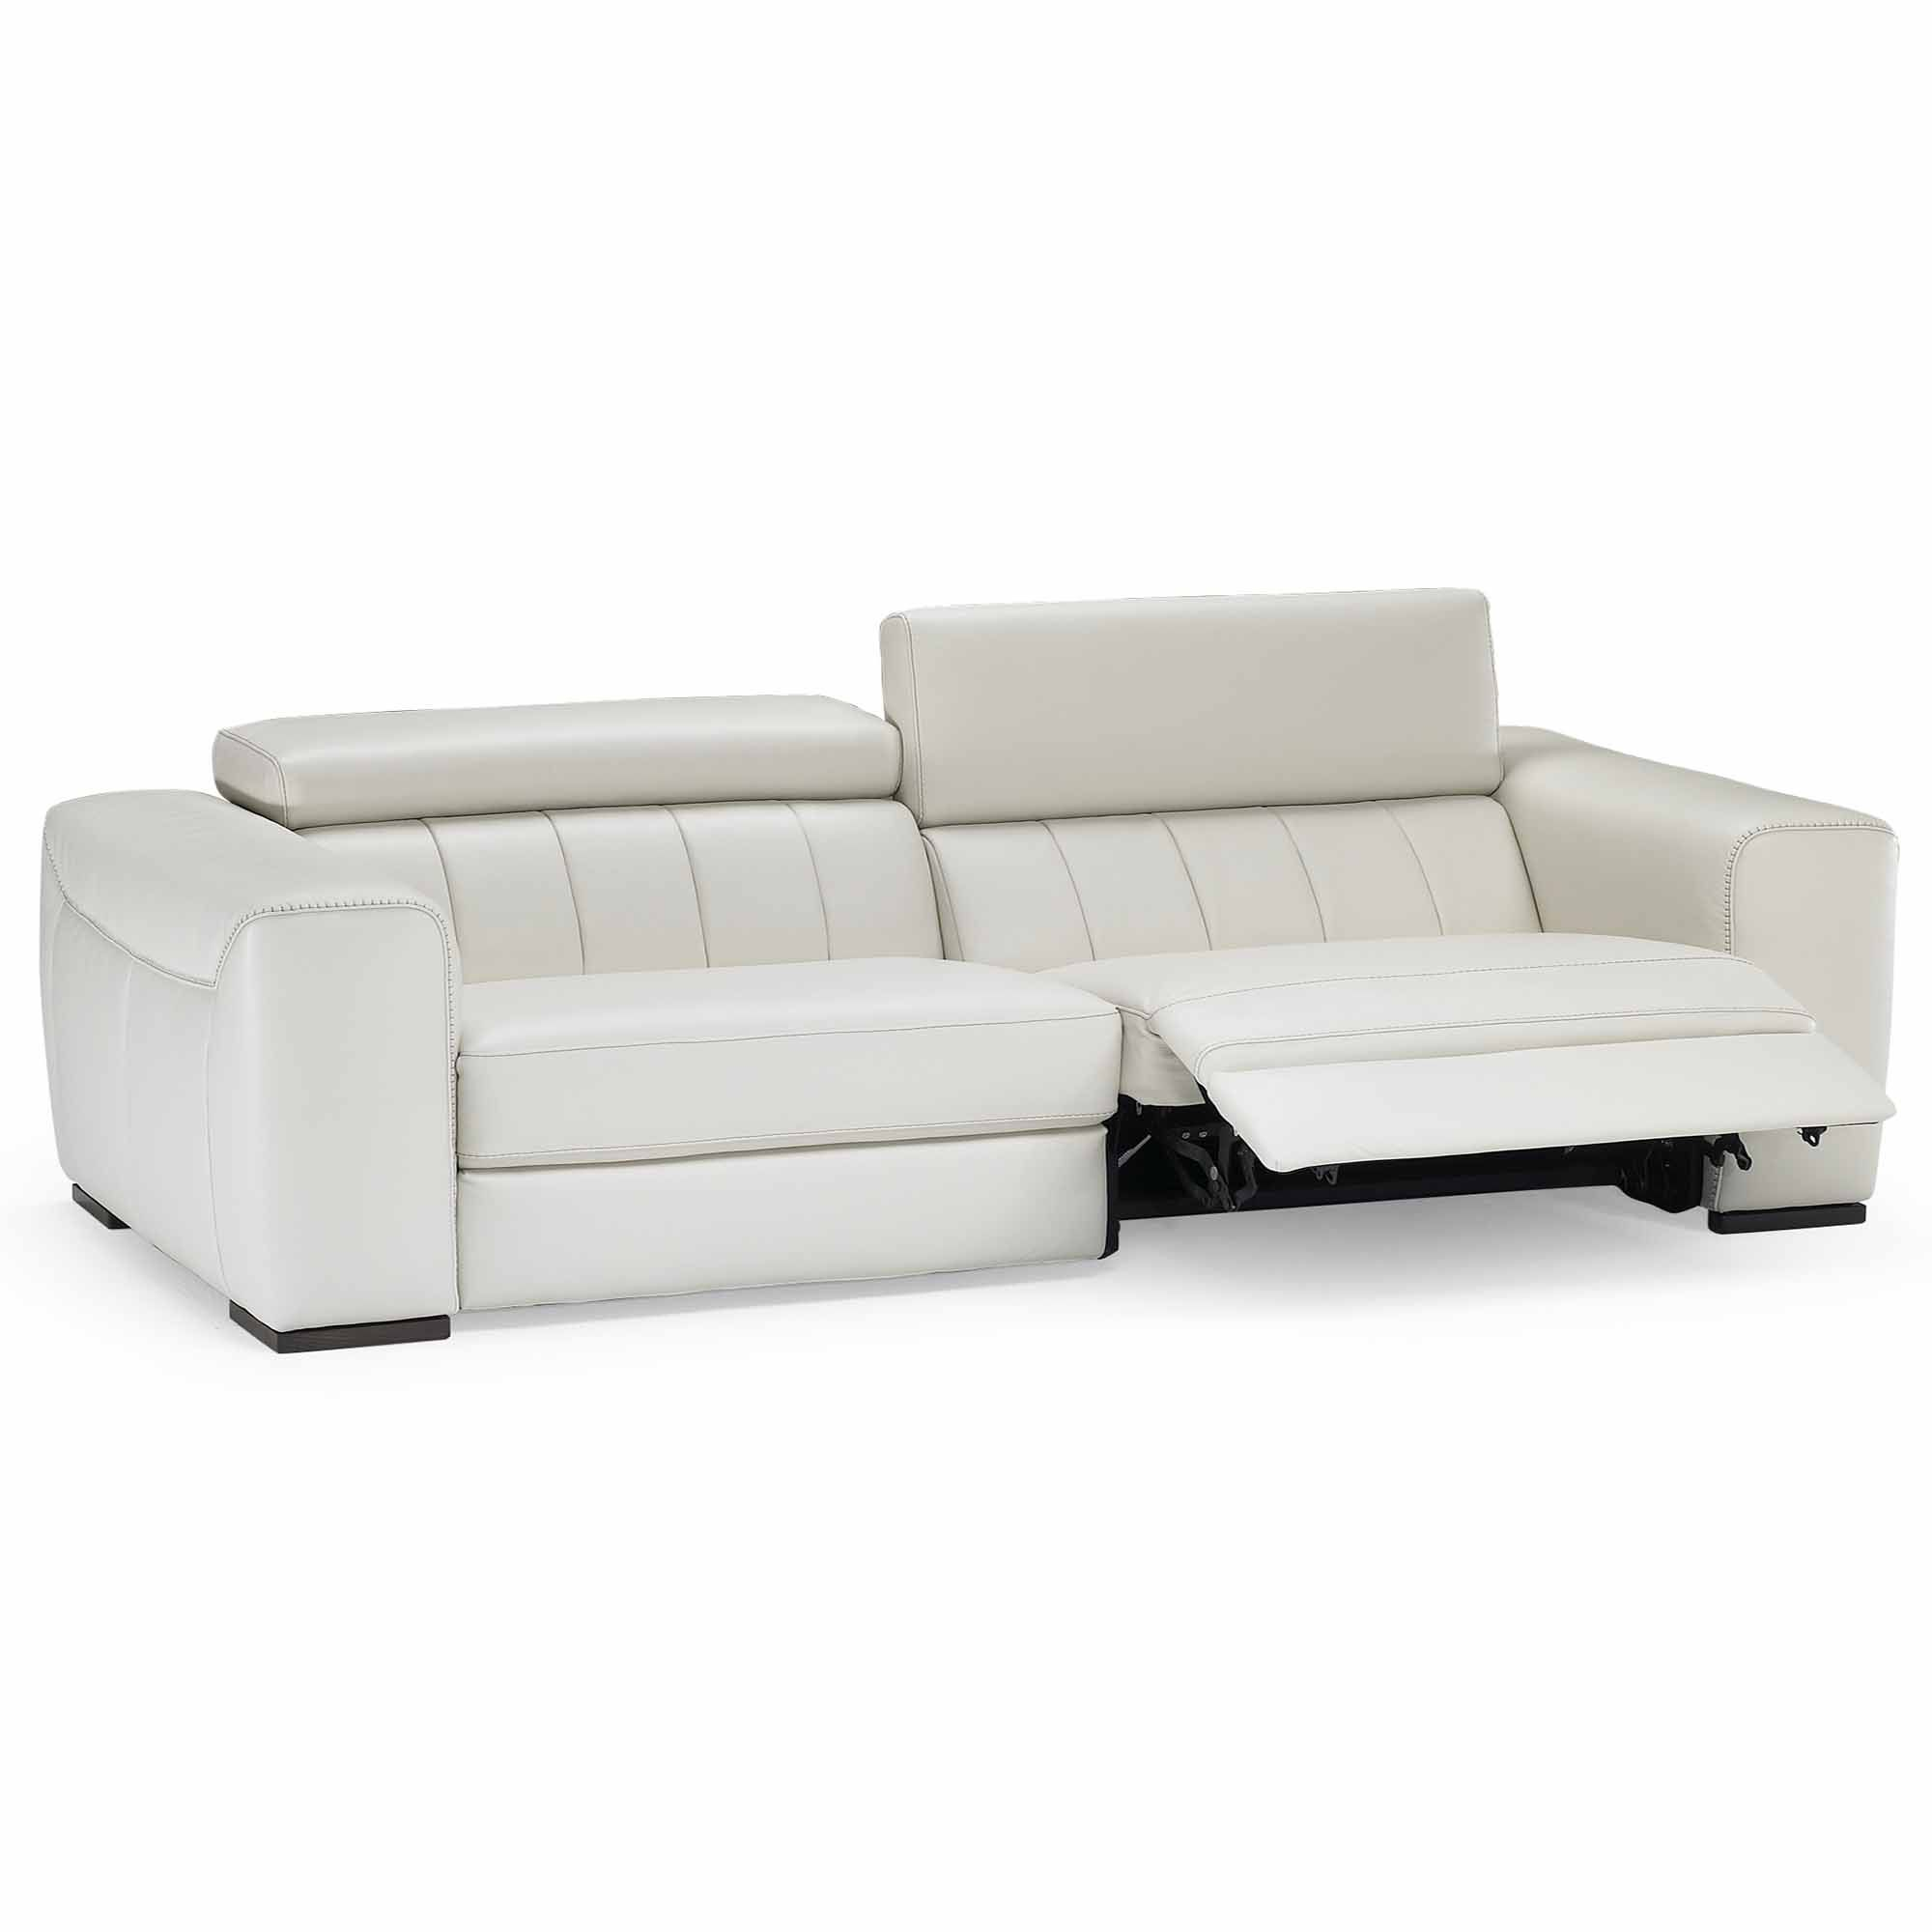 natuzzi editions zanotti 3 seater electric reclining sofa leather category 20 all sofa. Black Bedroom Furniture Sets. Home Design Ideas